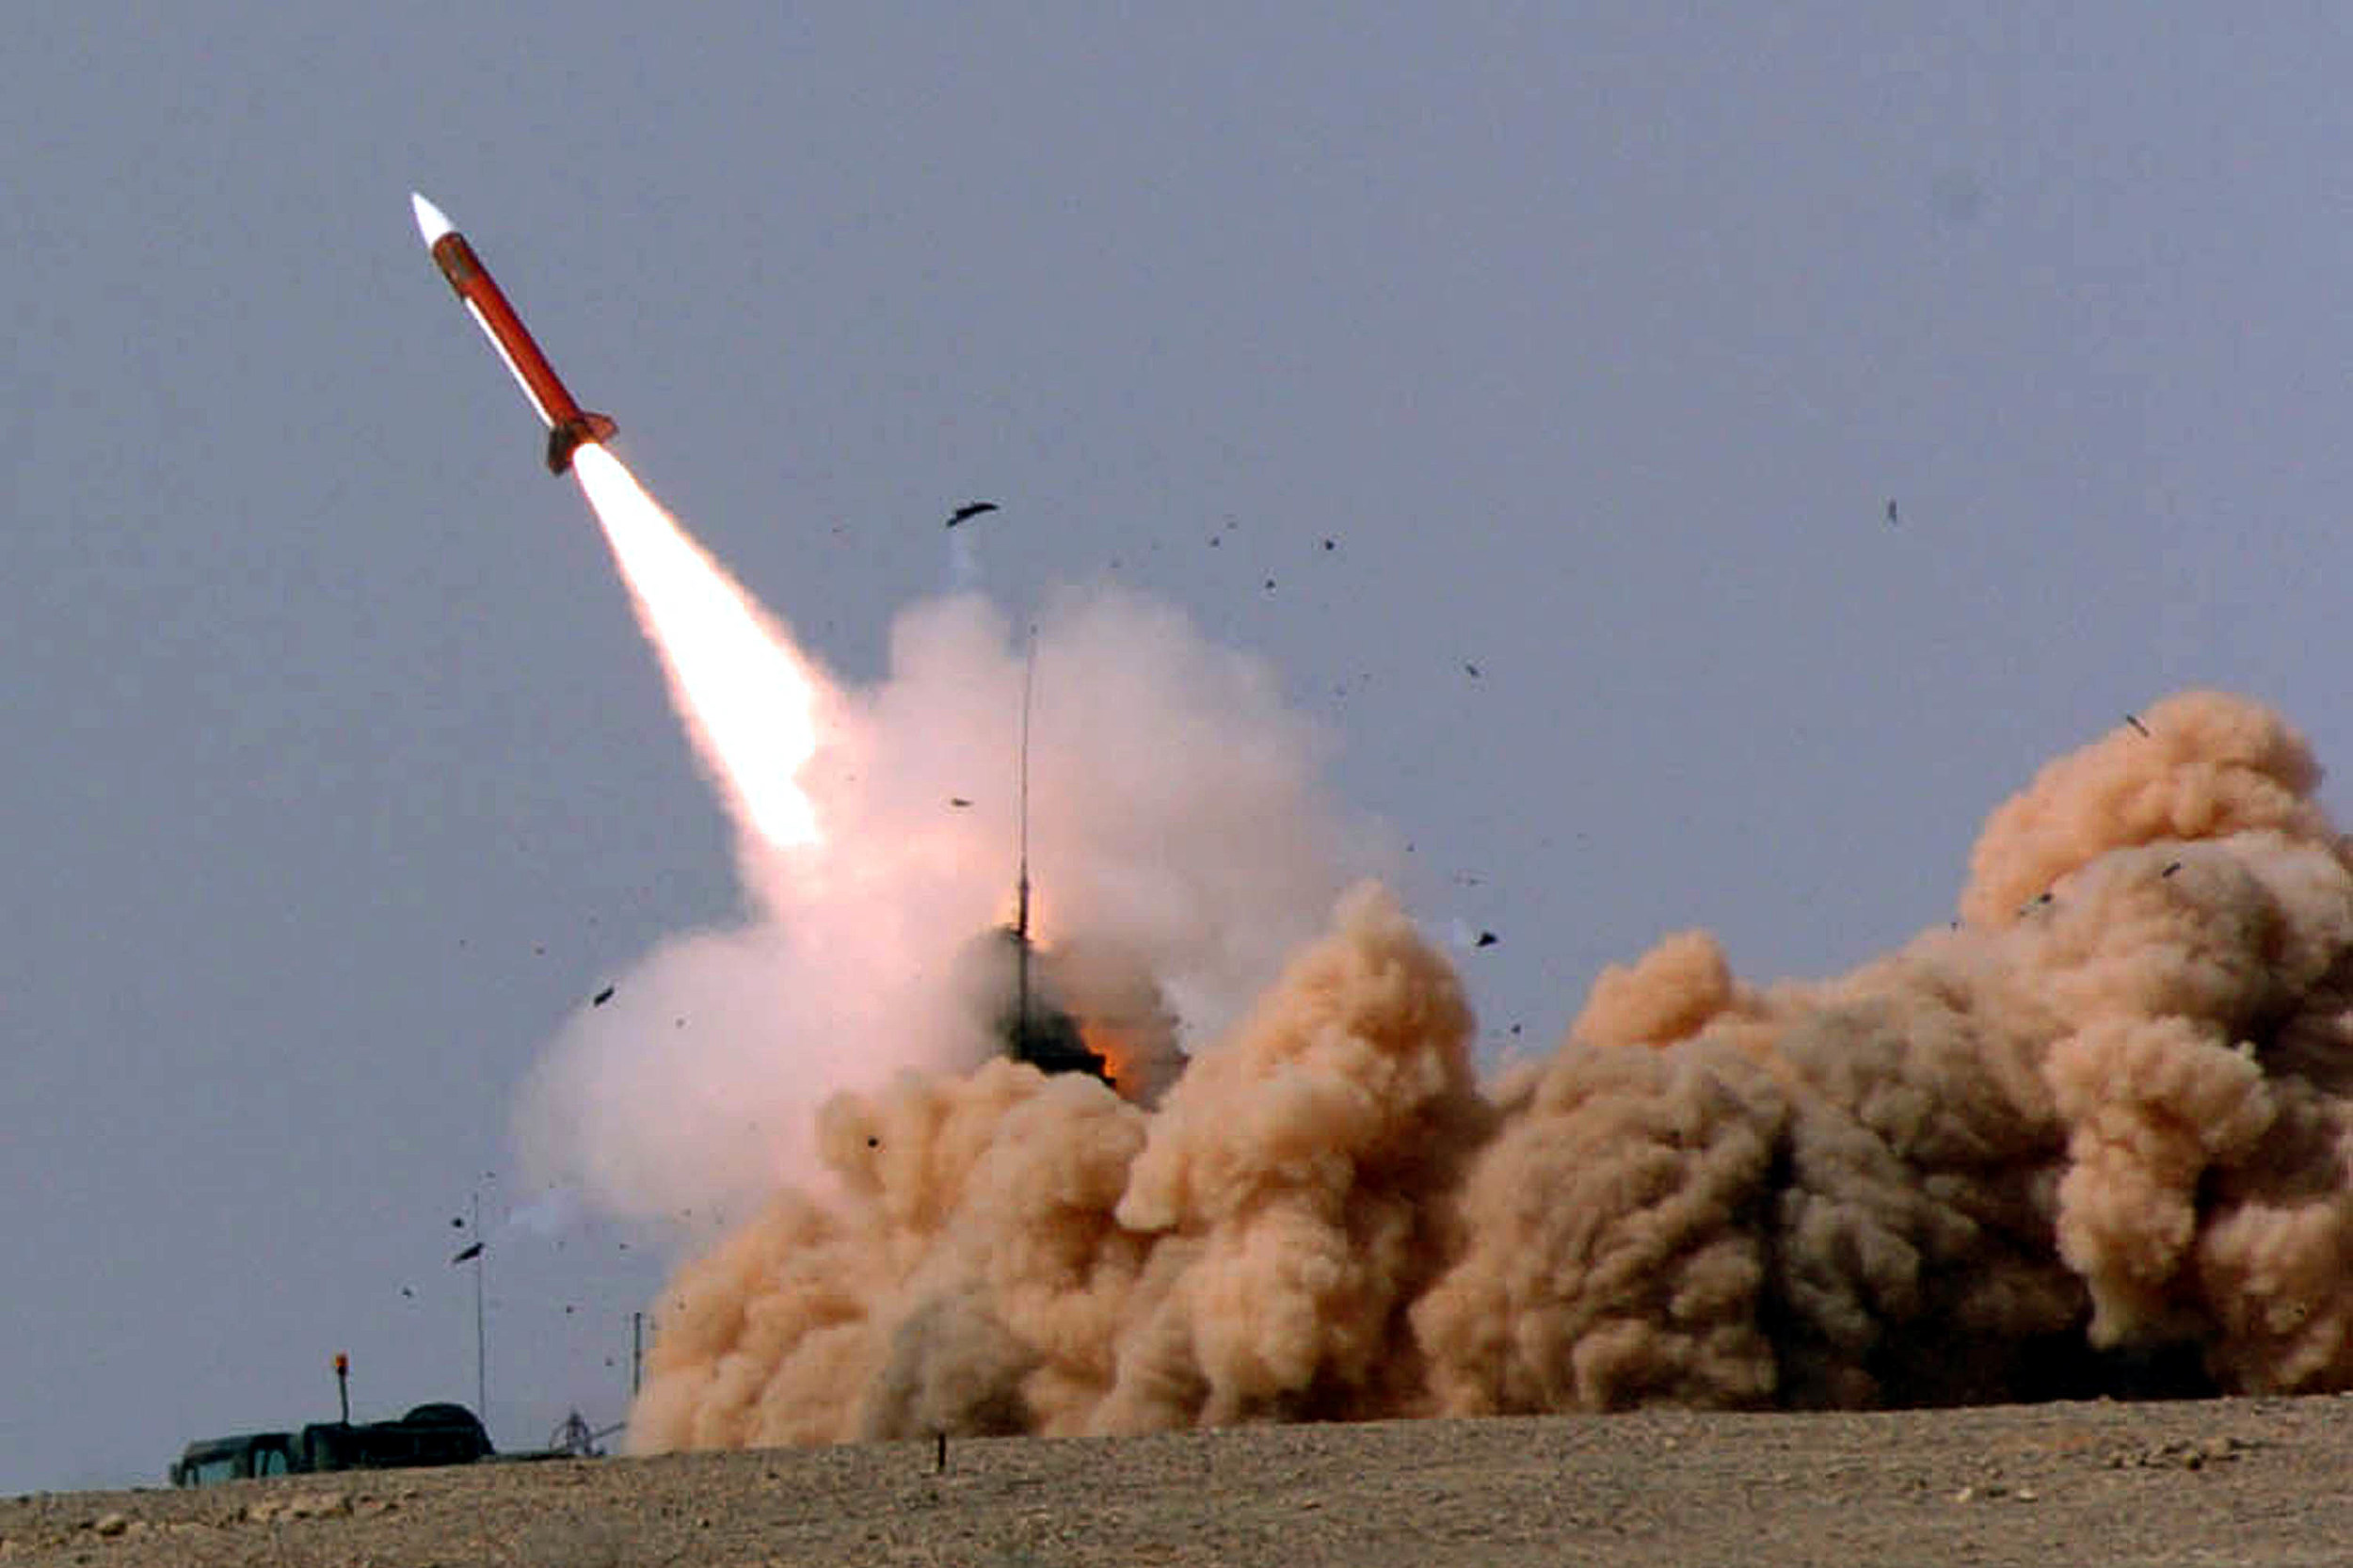 Israel Fires Patriot Missile In Joint US-Israel Air Defense Exercise